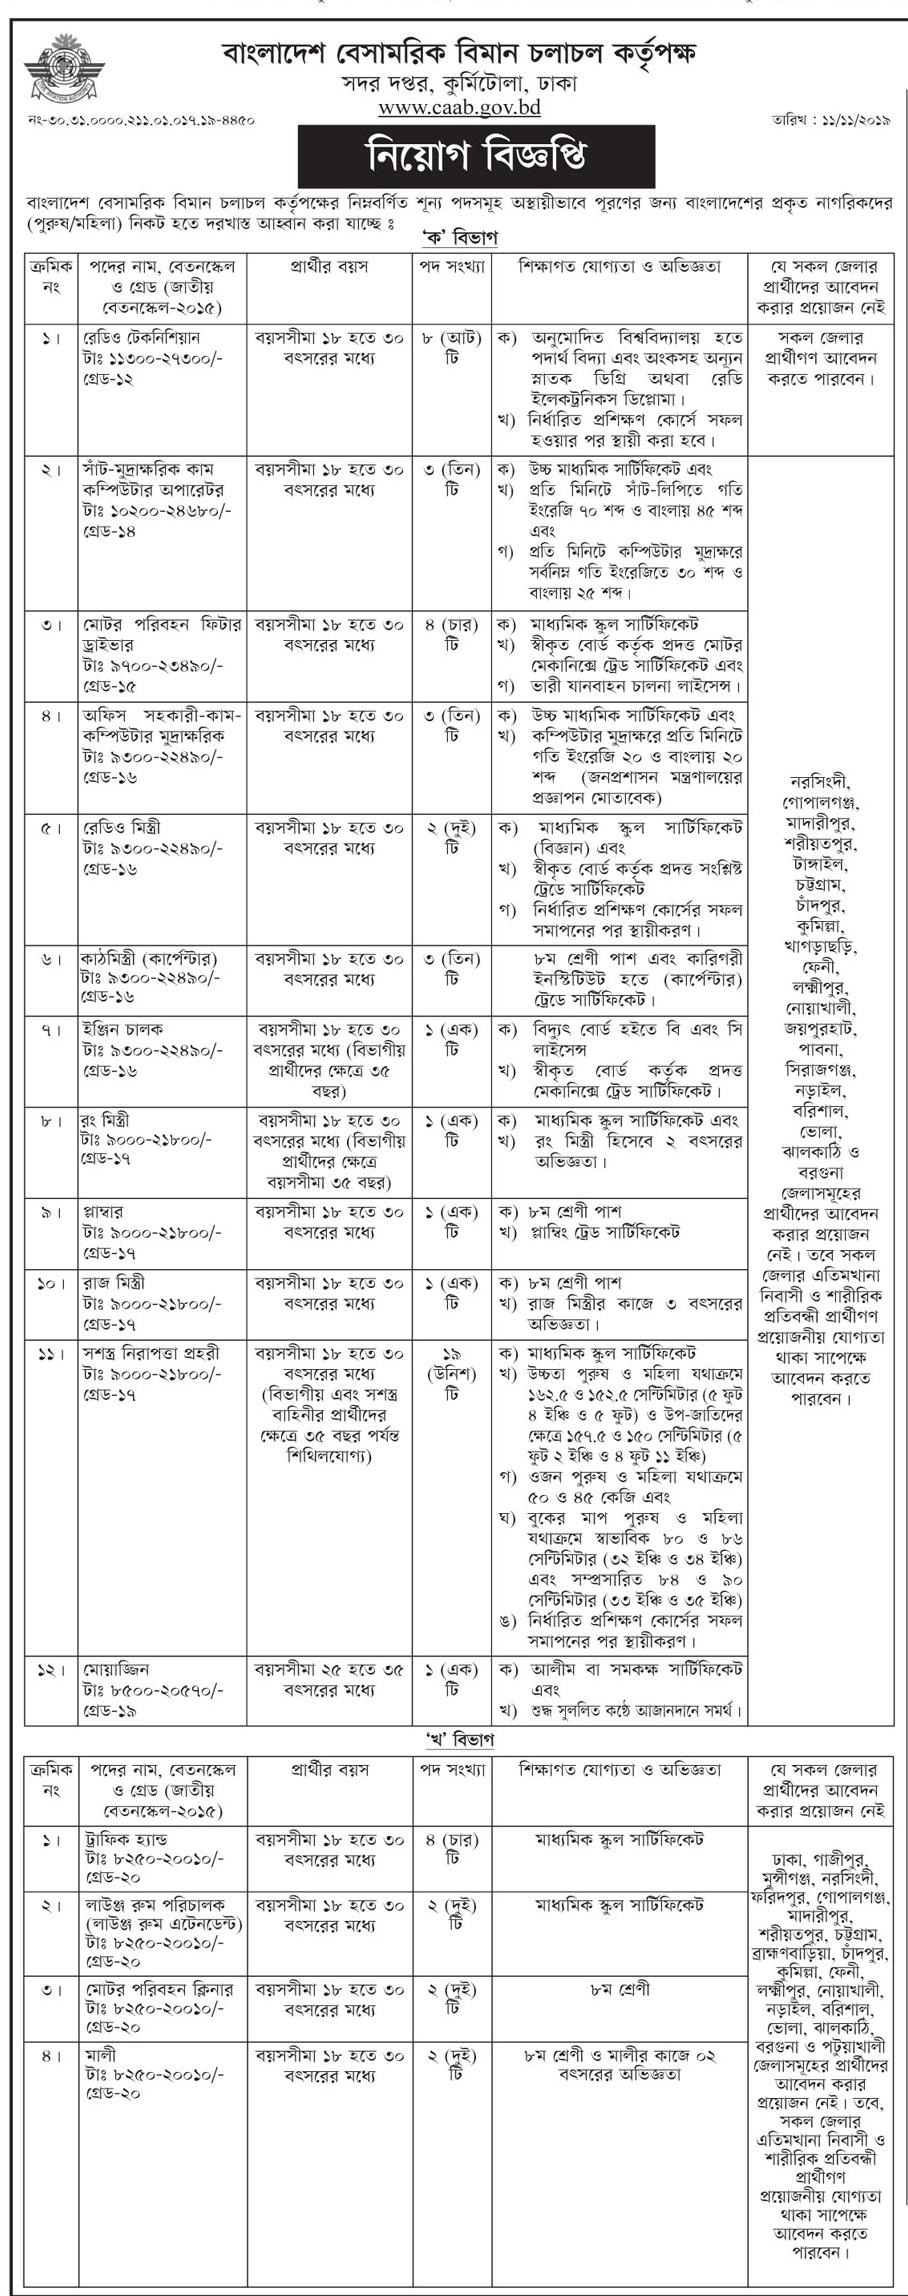 CAAB Job Circular Apply 2019 - caab.gov.bd